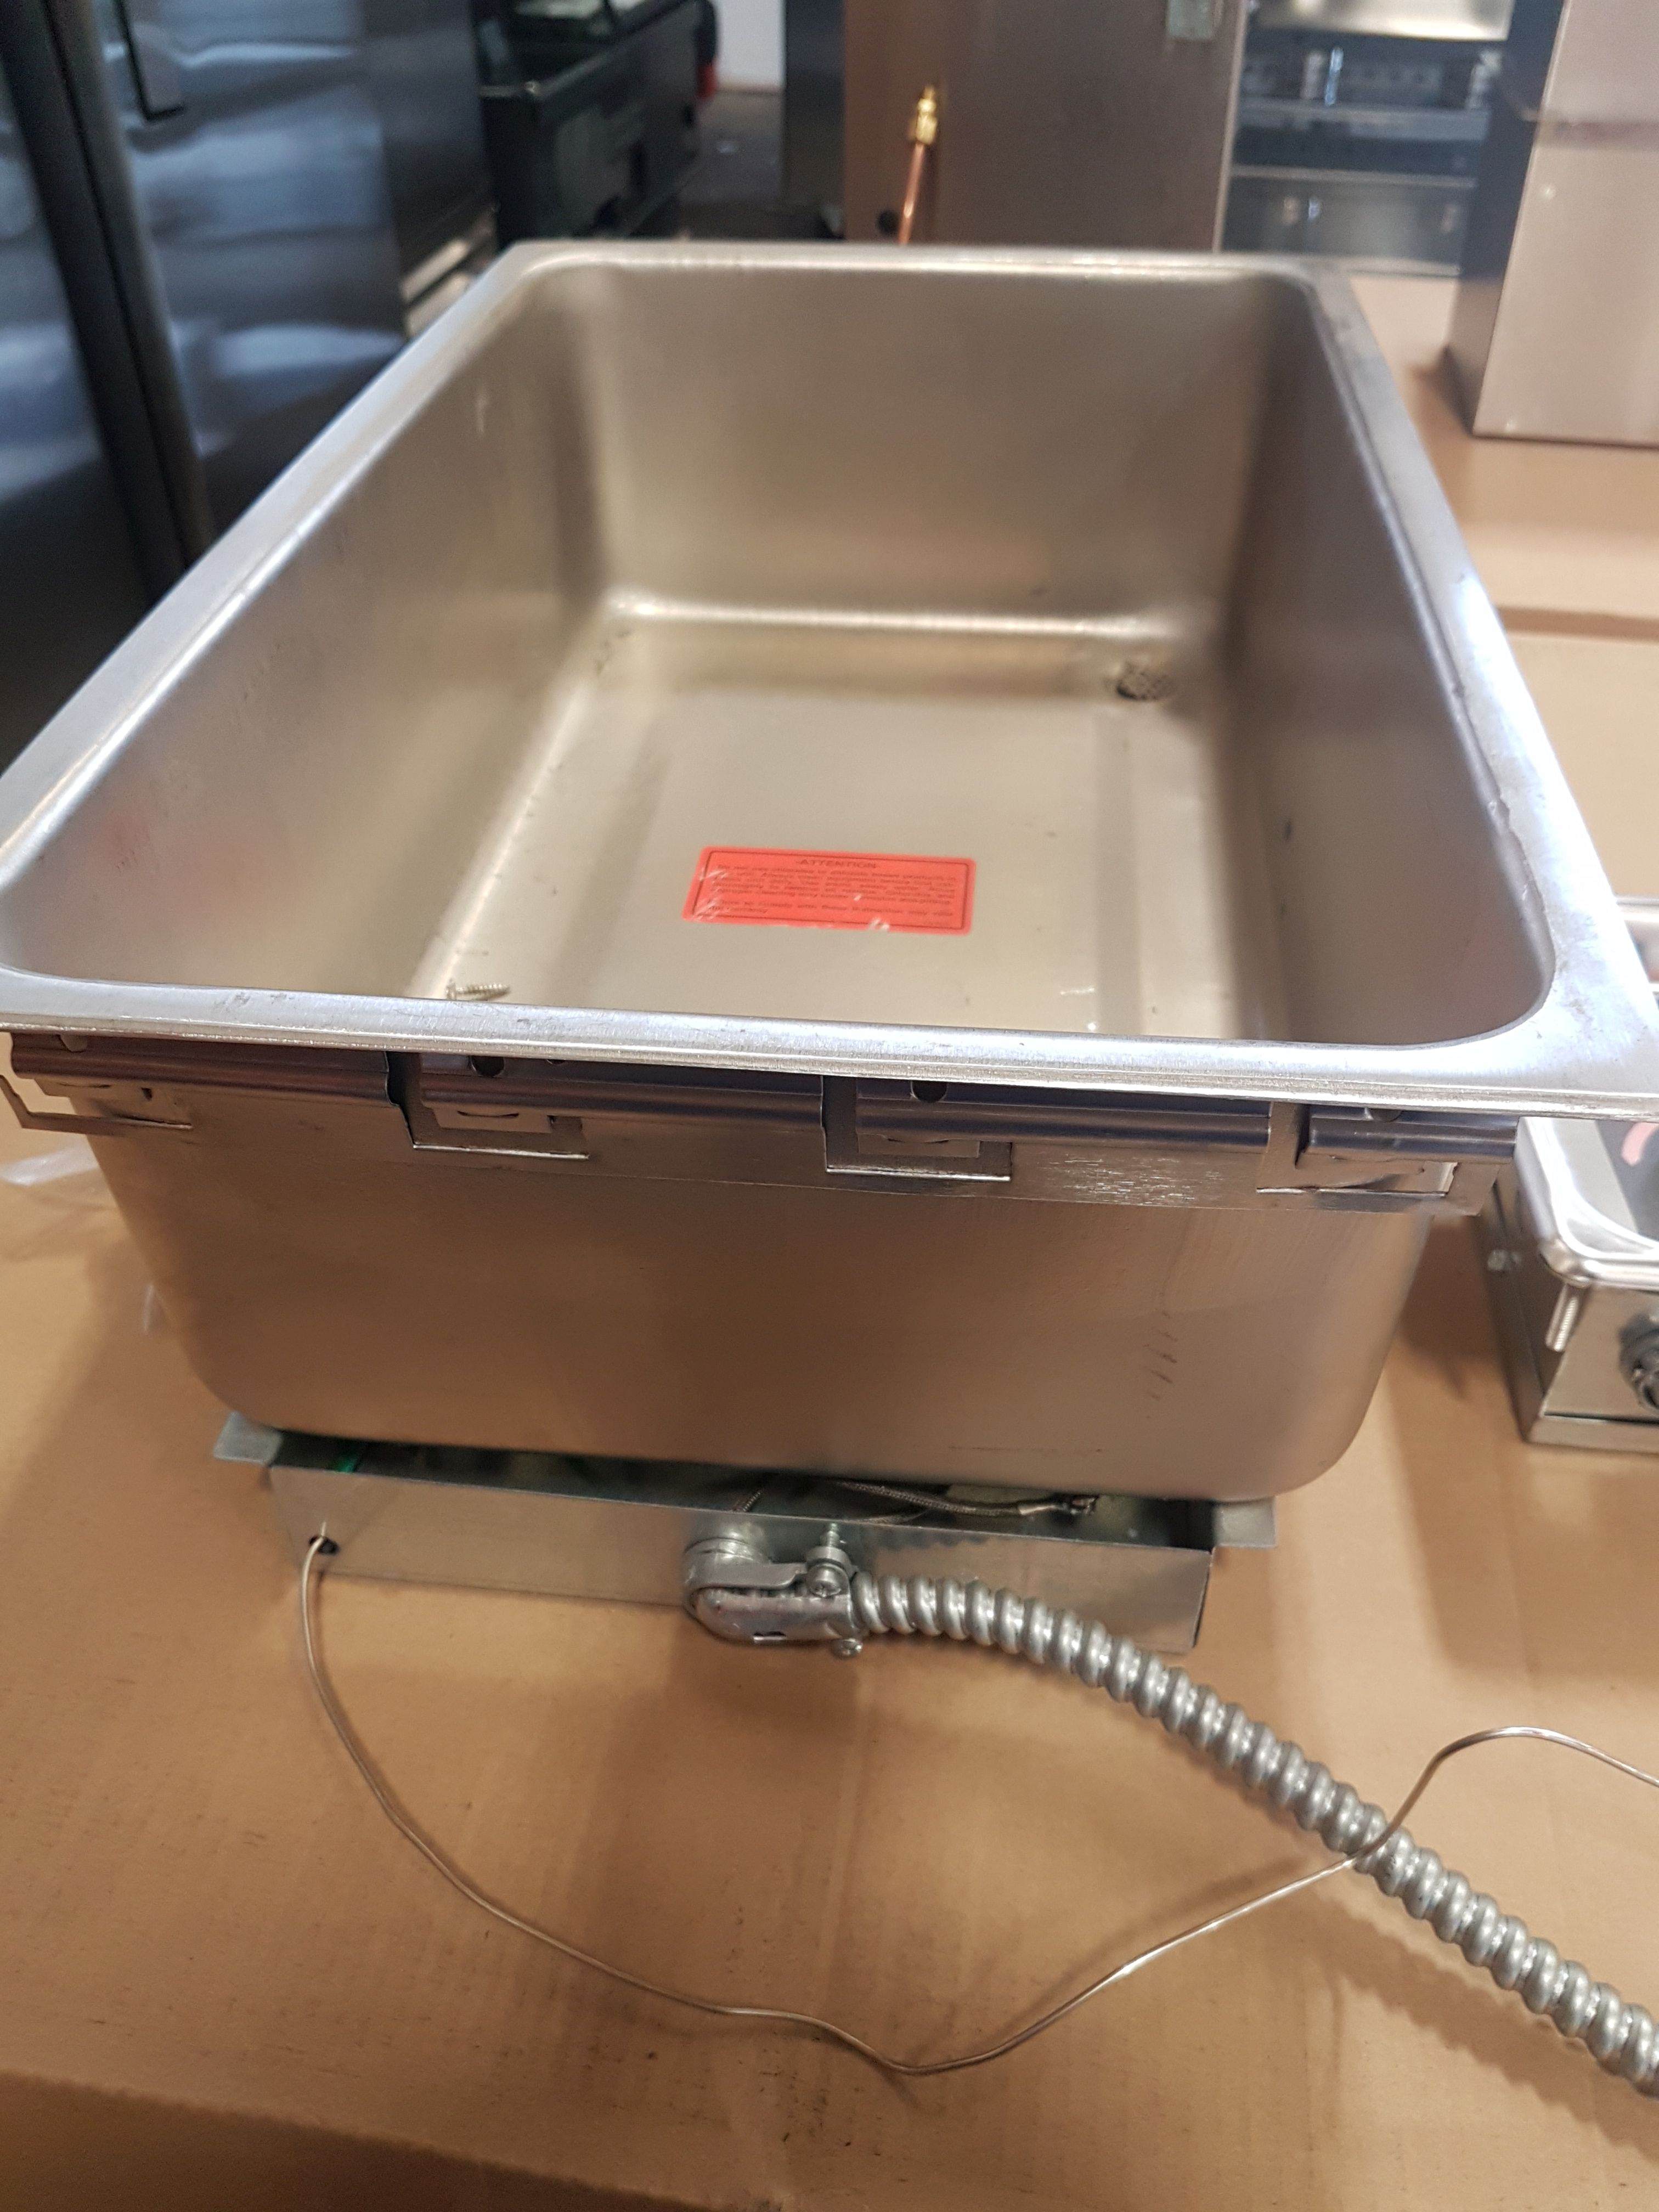 Lot 33 - APW Wyatt Drop in Heated Well with Temperature Control